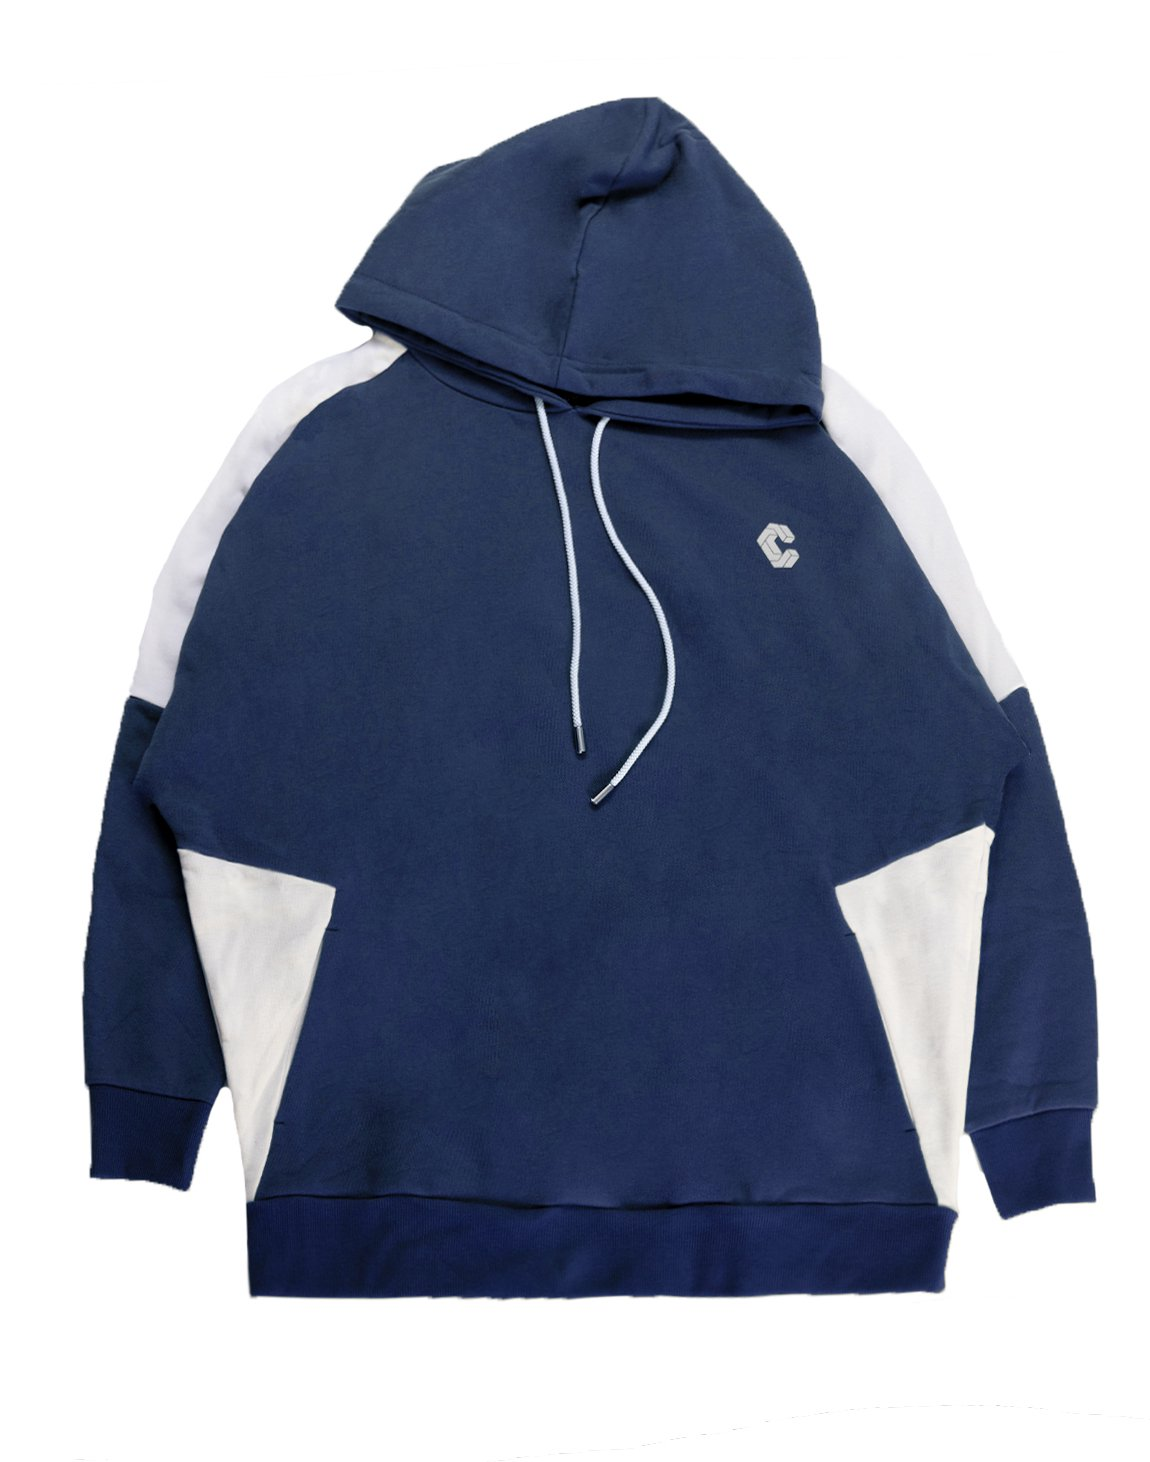 <img class='new_mark_img1' src='https://img.shop-pro.jp/img/new/icons55.gif' style='border:none;display:inline;margin:0px;padding:0px;width:auto;' />CRONOS NEW SHOULDER COLOR HOODY【NAVY×WHITE】